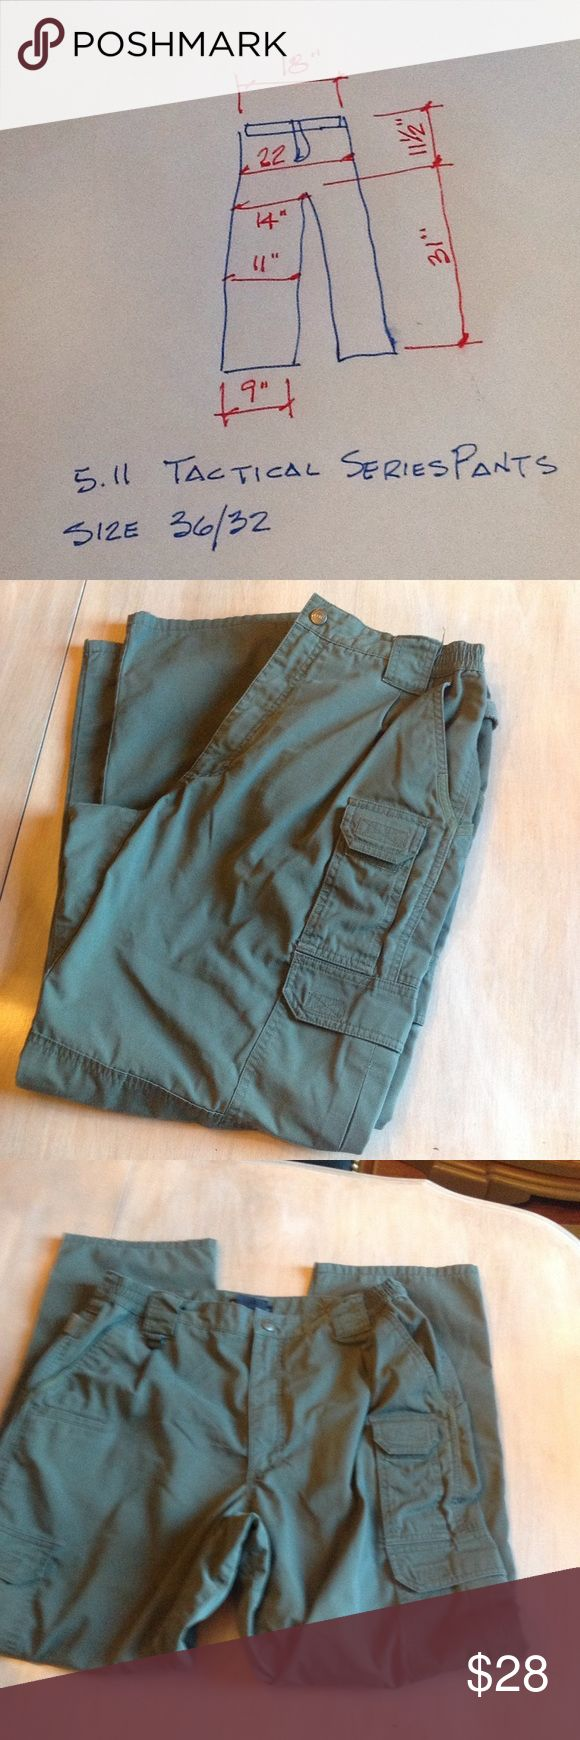 5.11 Tactical series pants Preowned, 36/32, 65% polyester, 35% cotton great condition Pants Cargo